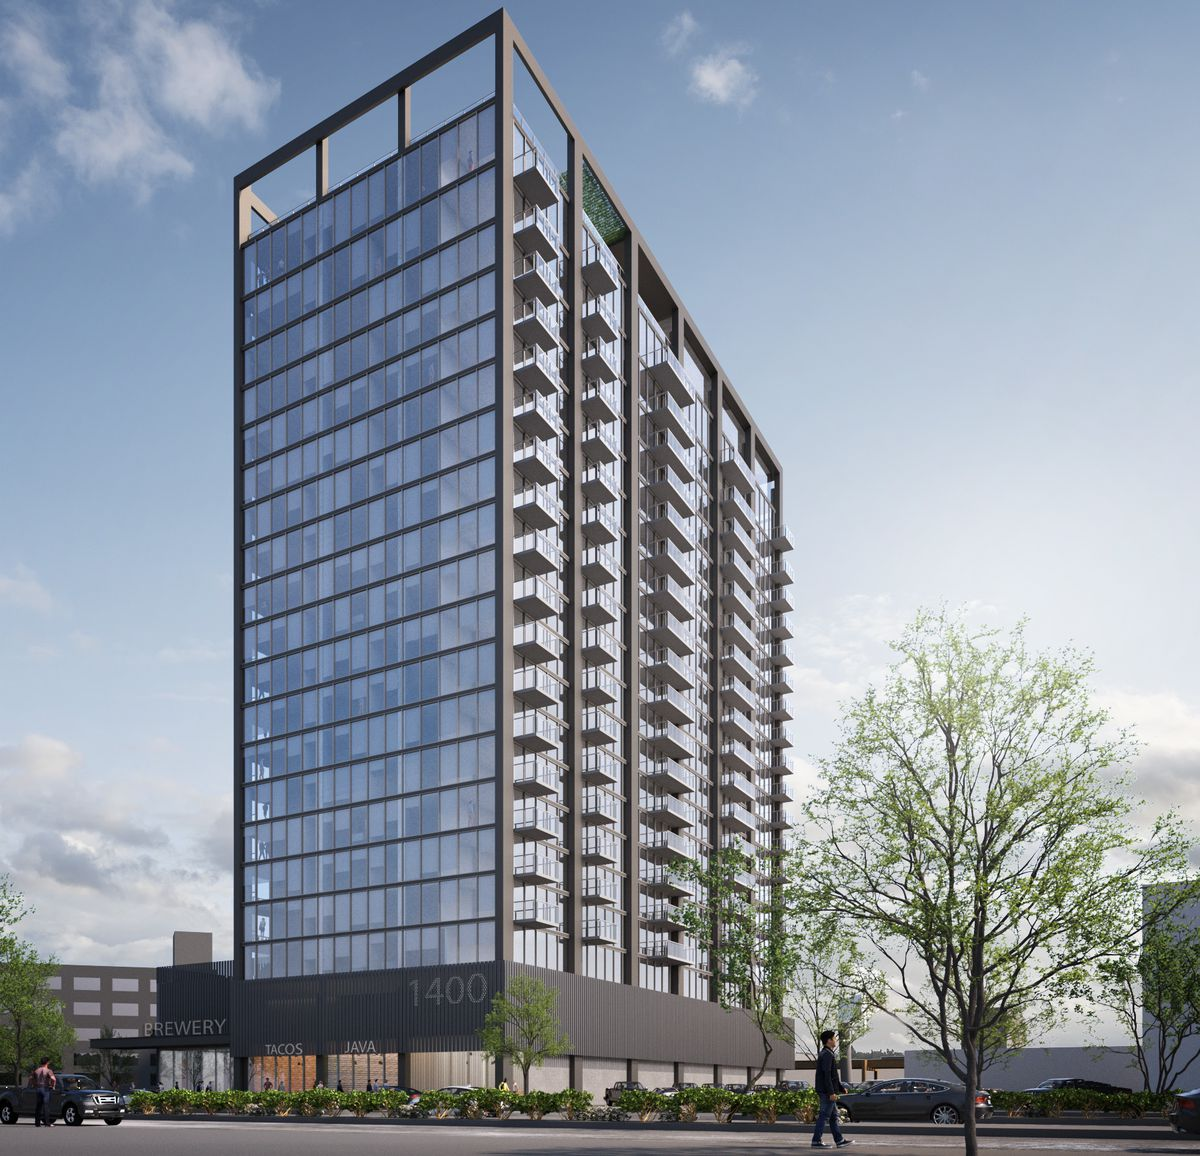 Apartments Near Me Based On Income: West Loop Apartment Developments Bring 500 Units To